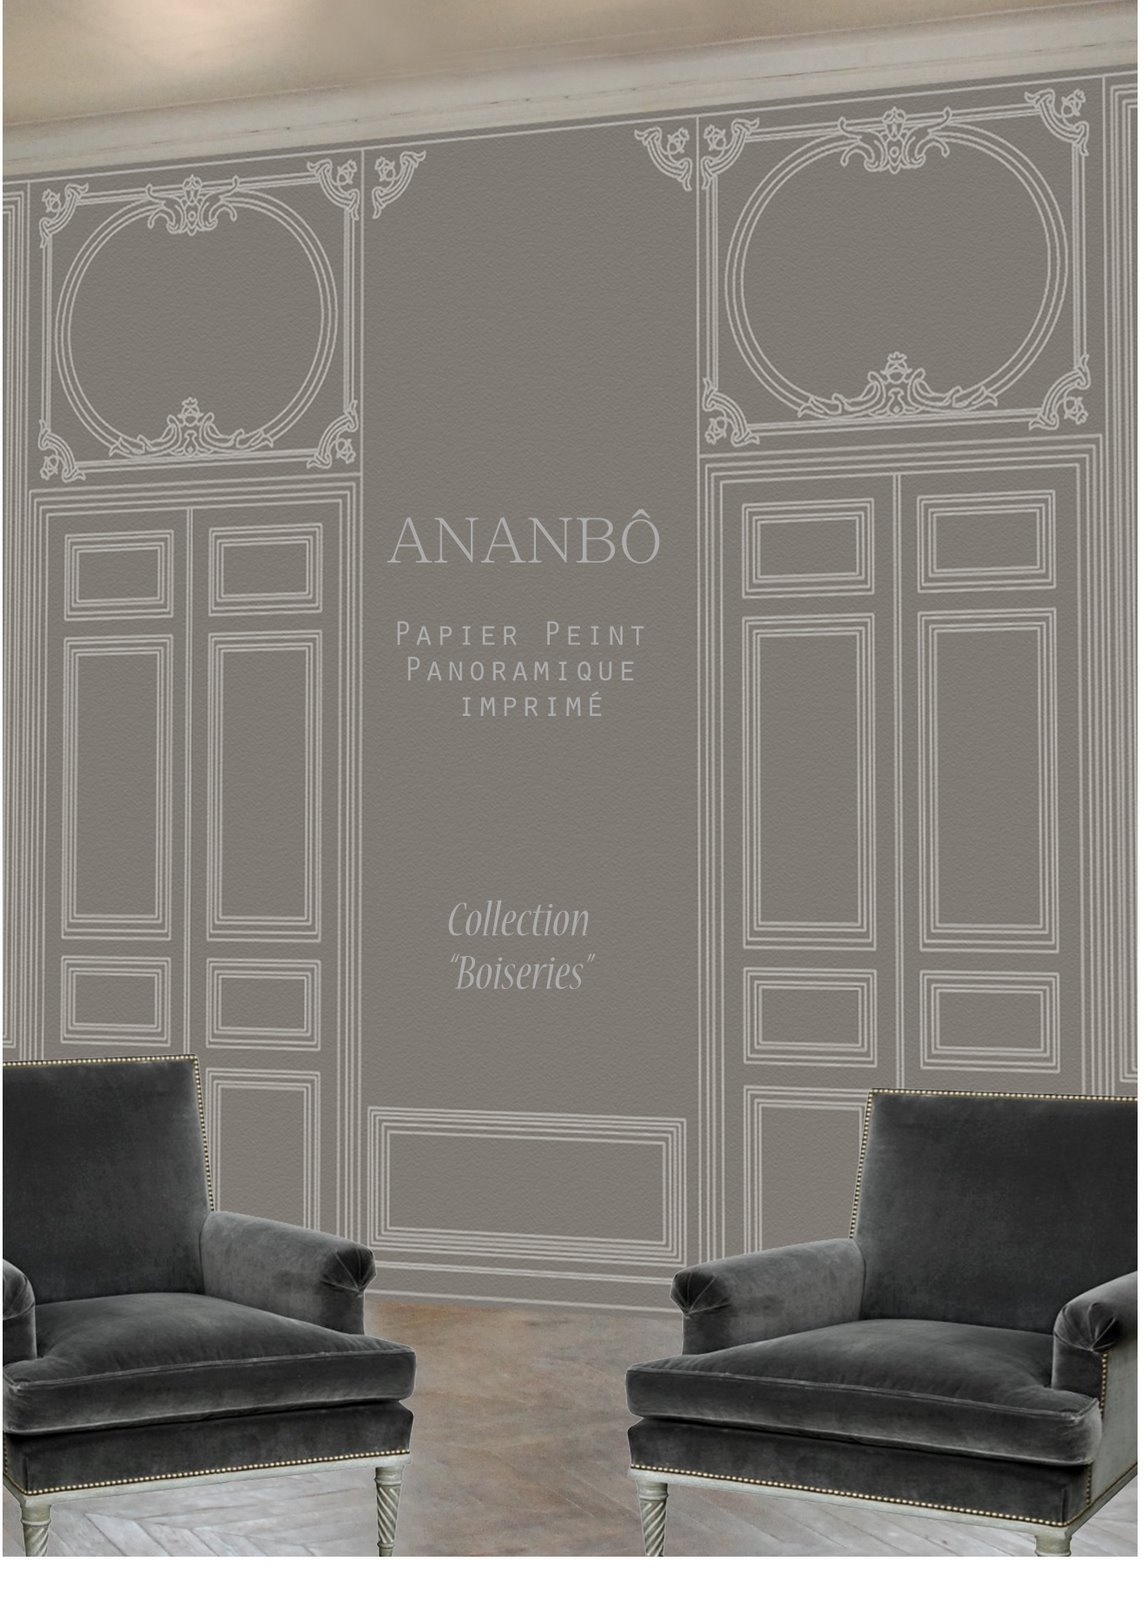 ananb papier peint panoramique imprim la collection. Black Bedroom Furniture Sets. Home Design Ideas